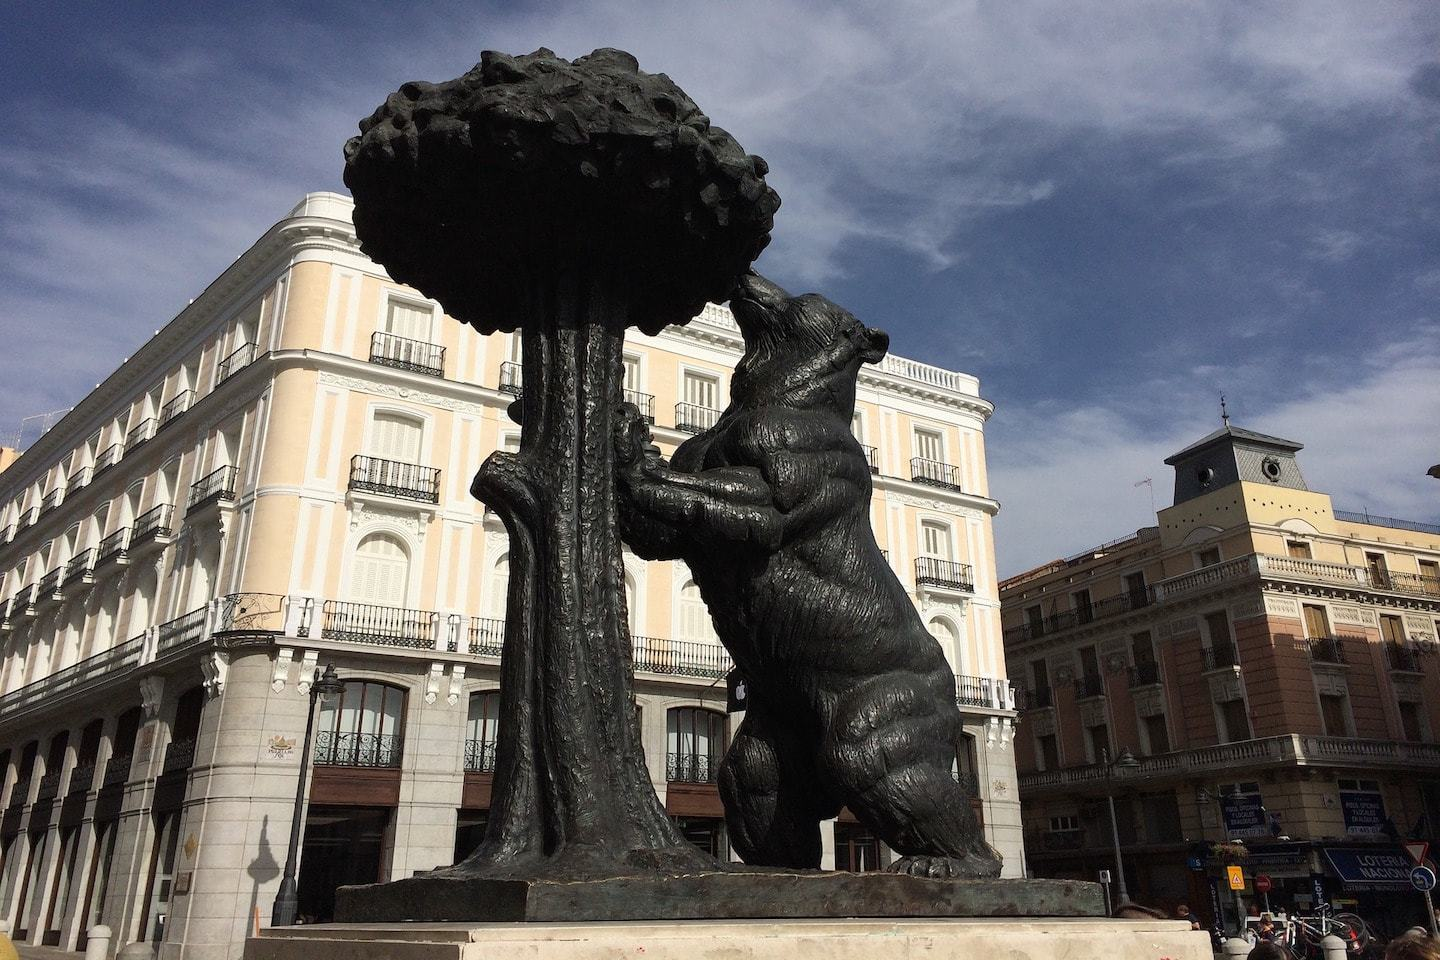 statue of a bear eating out of a tree in madrid spain